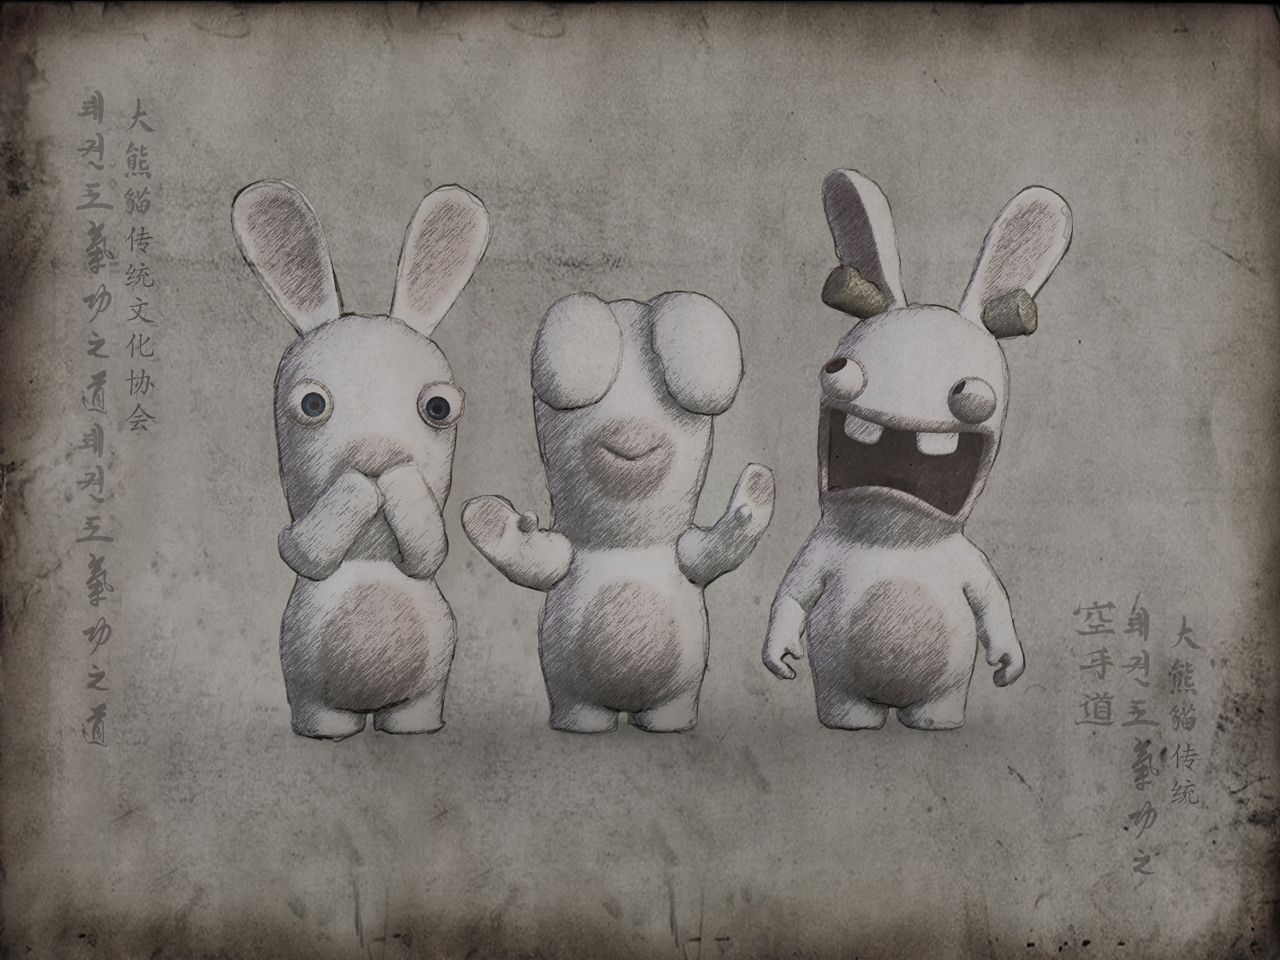 no evil wallpaper background nintendo wii bunny img image picture pic